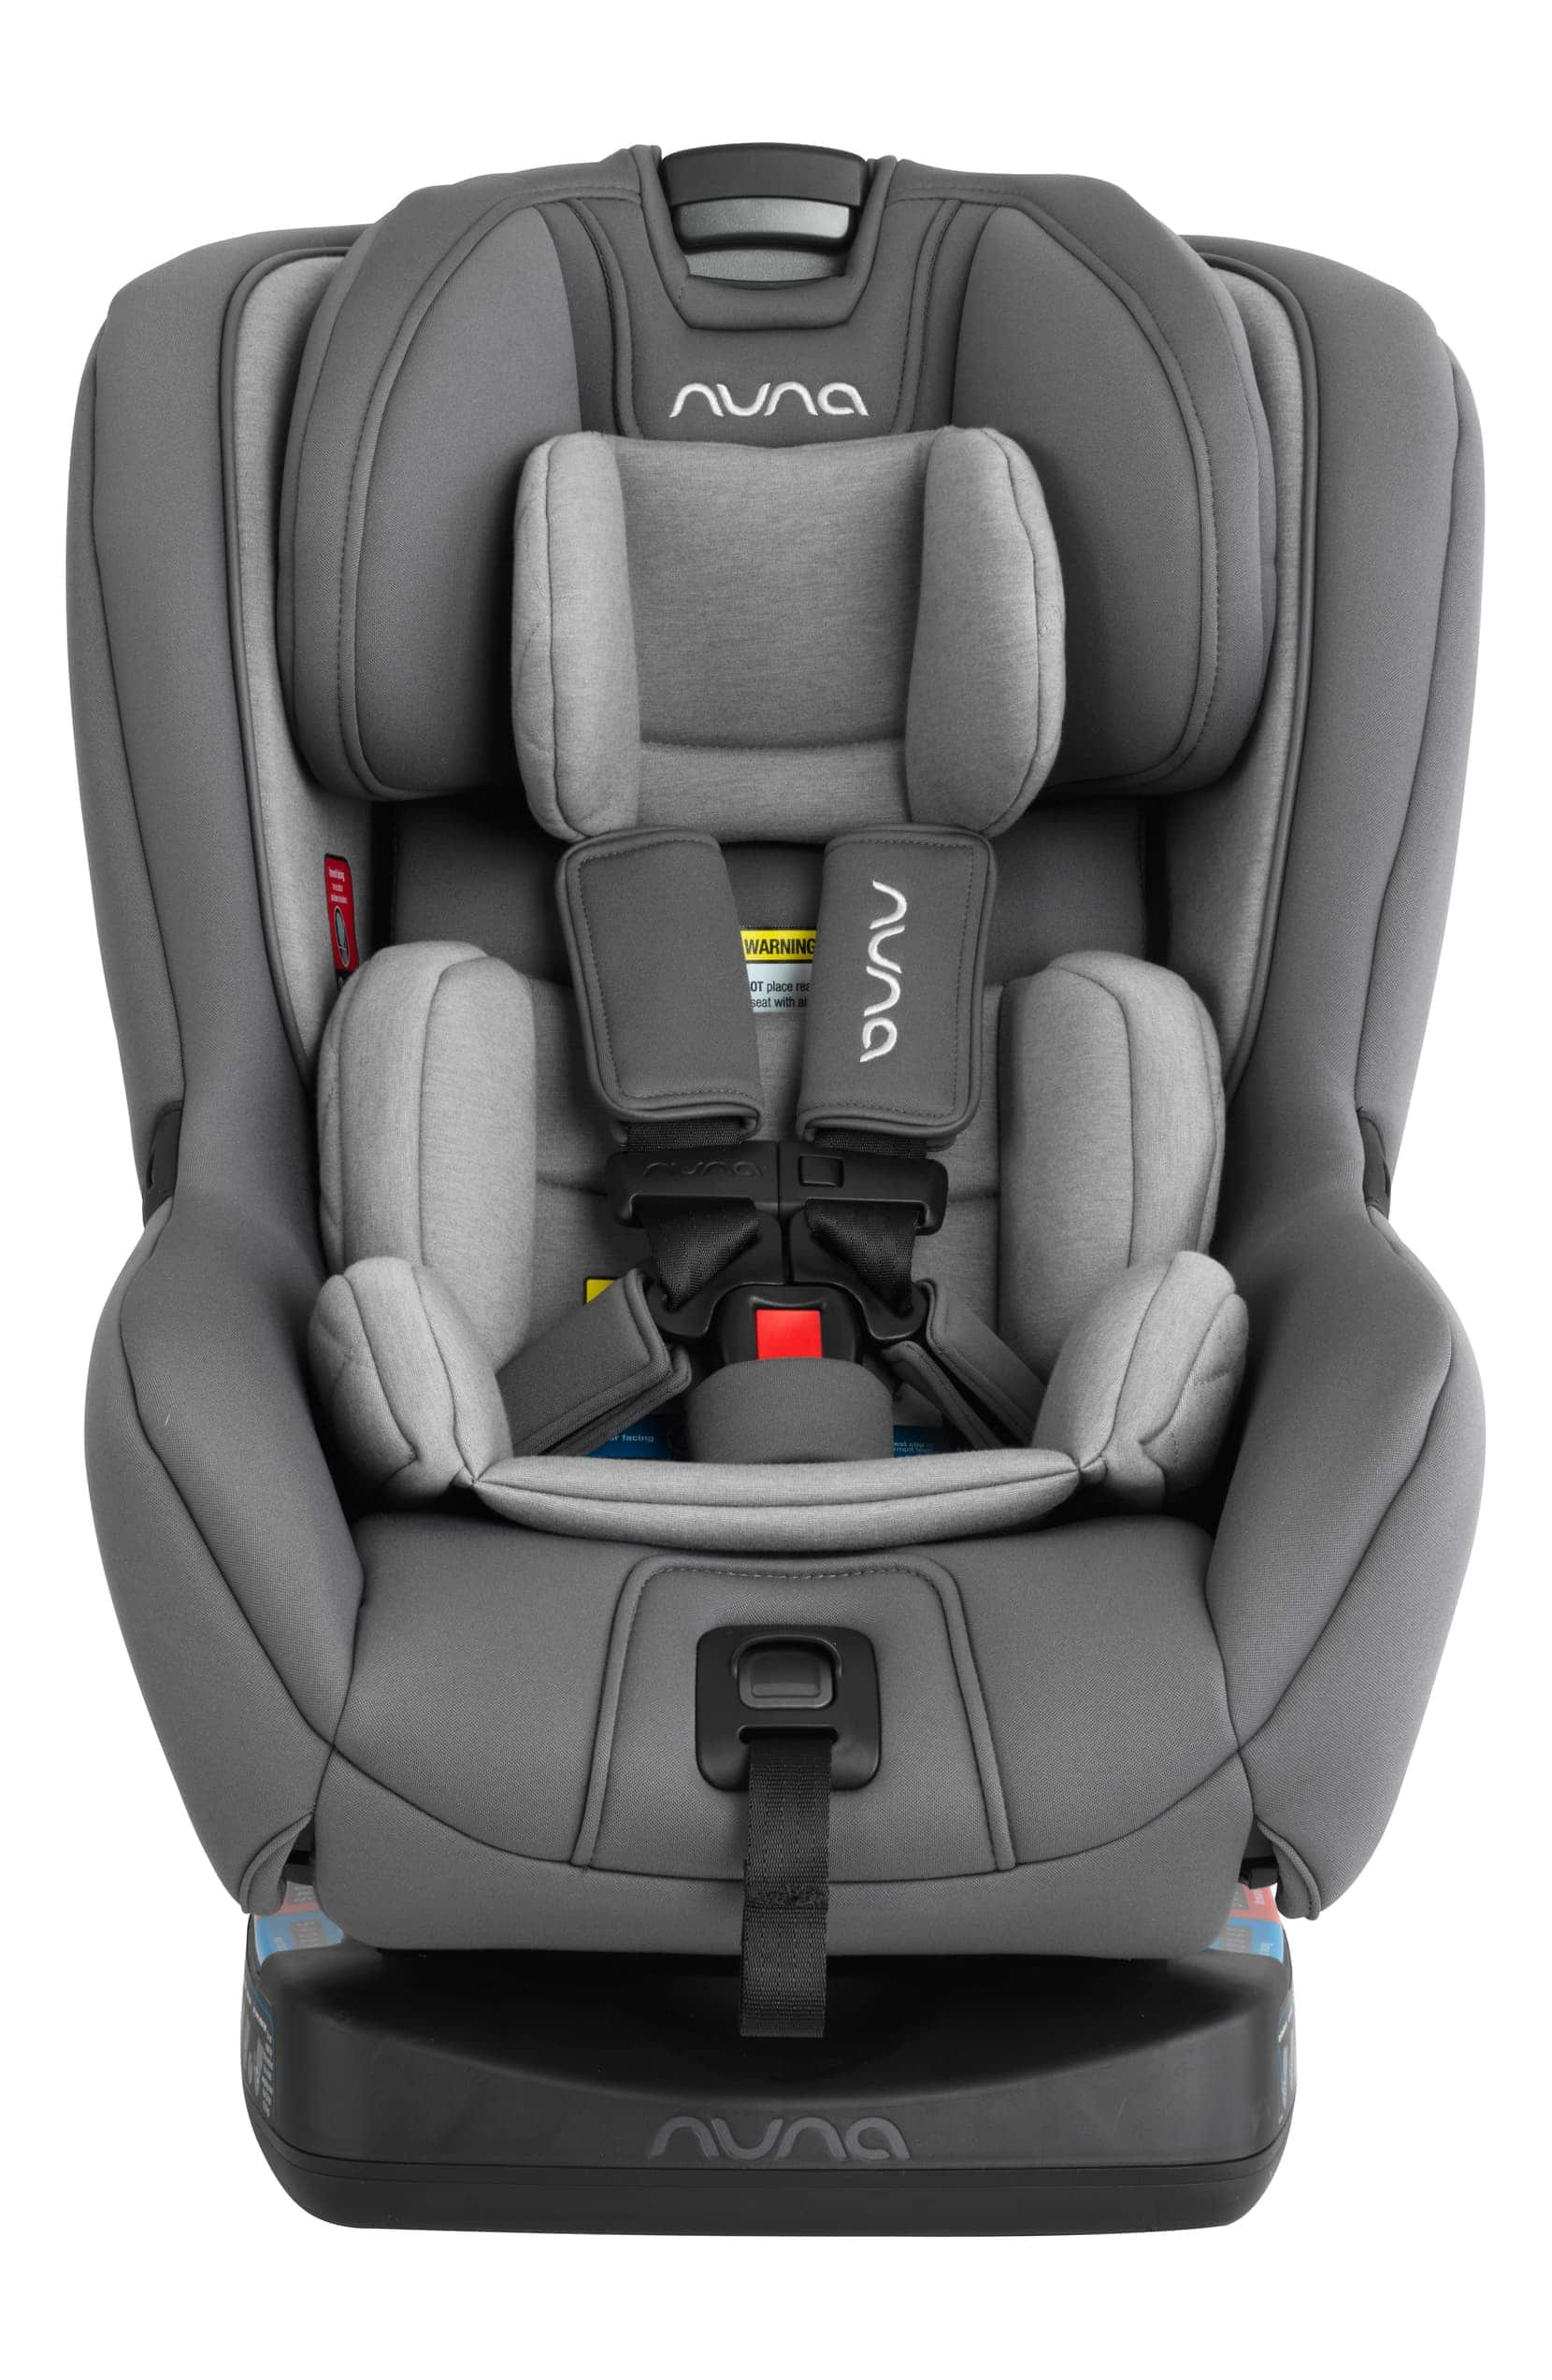 Nuna Rava convertible car seat $100 off Nordstrom exclusive color $399.99